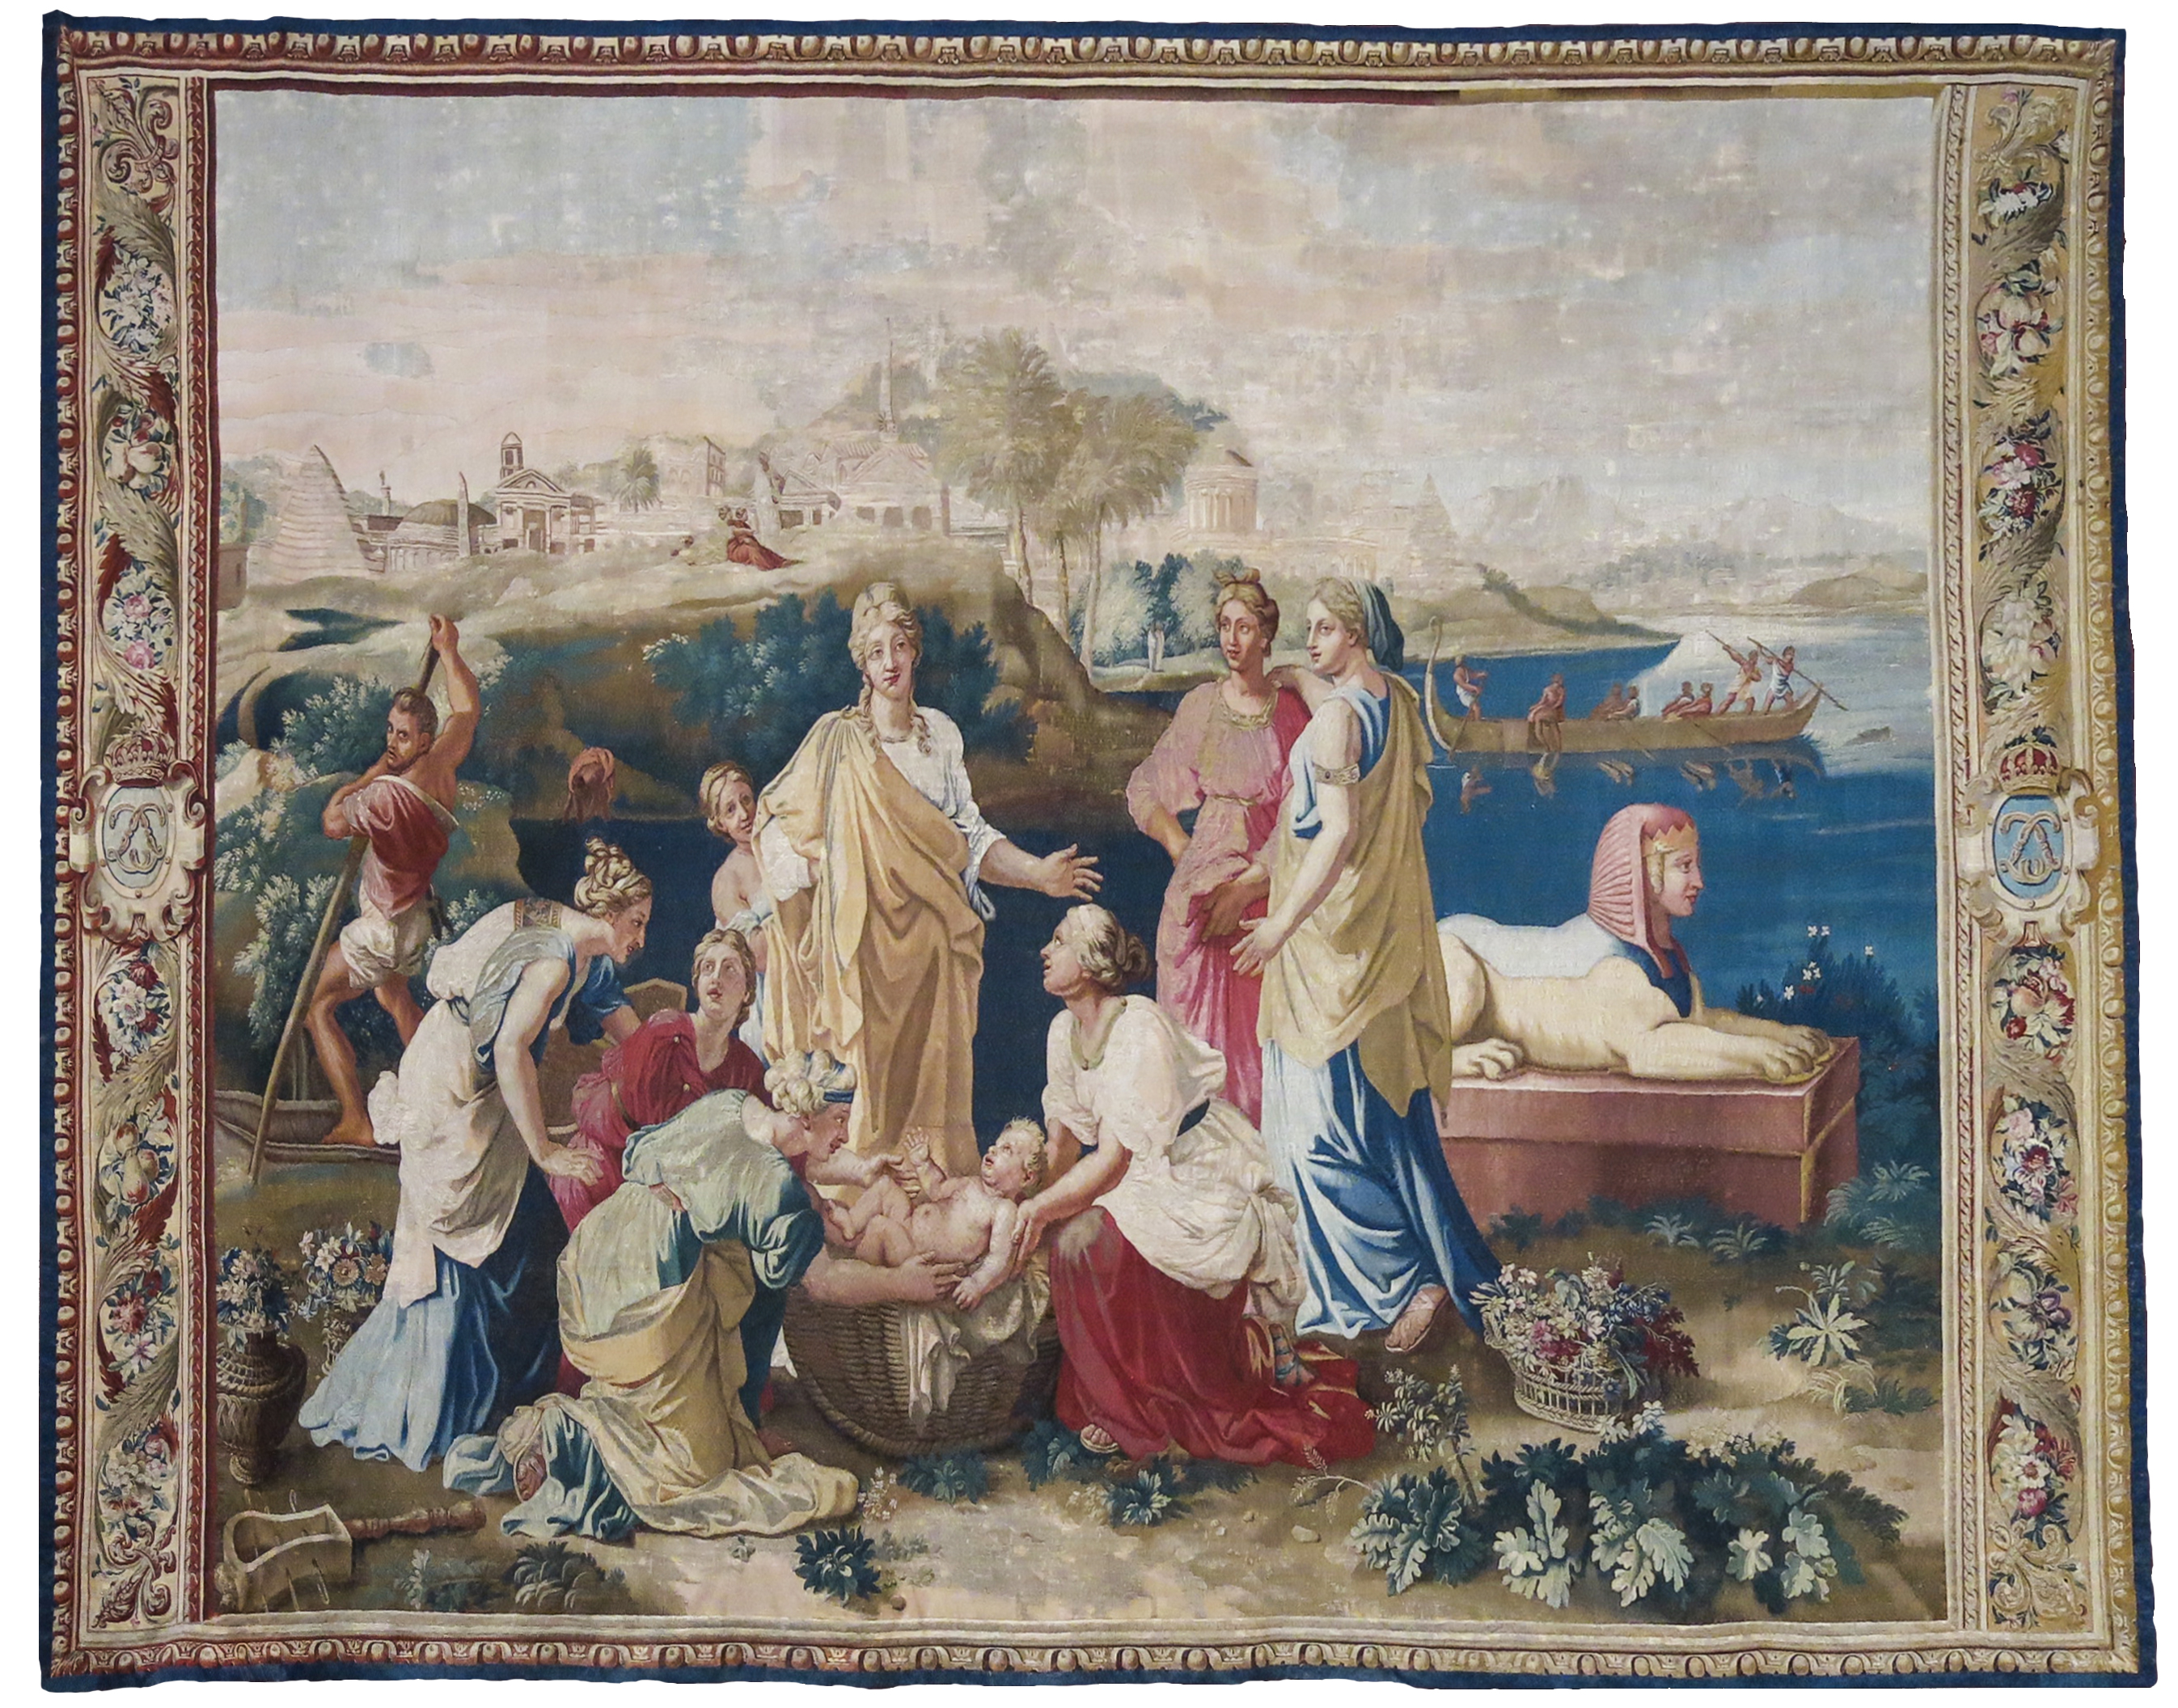 Fiding of Moses, 1689 — The Enlightenment